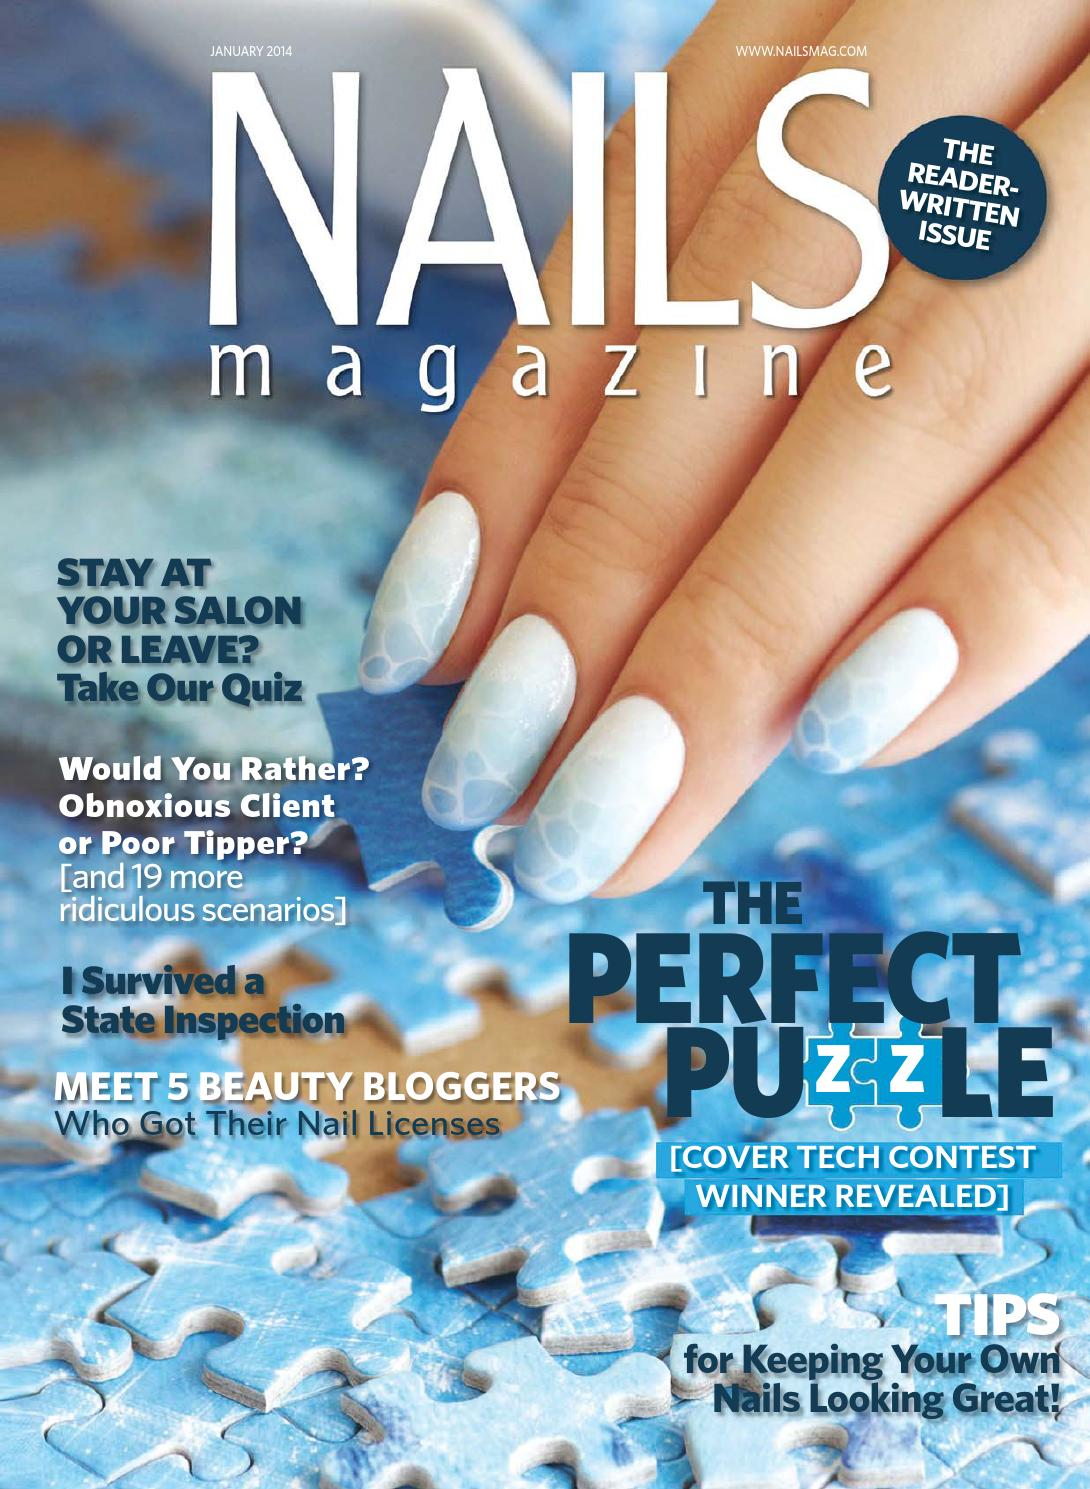 Nails Magazine 2014 01 By Reforma Nails Cz Issuu